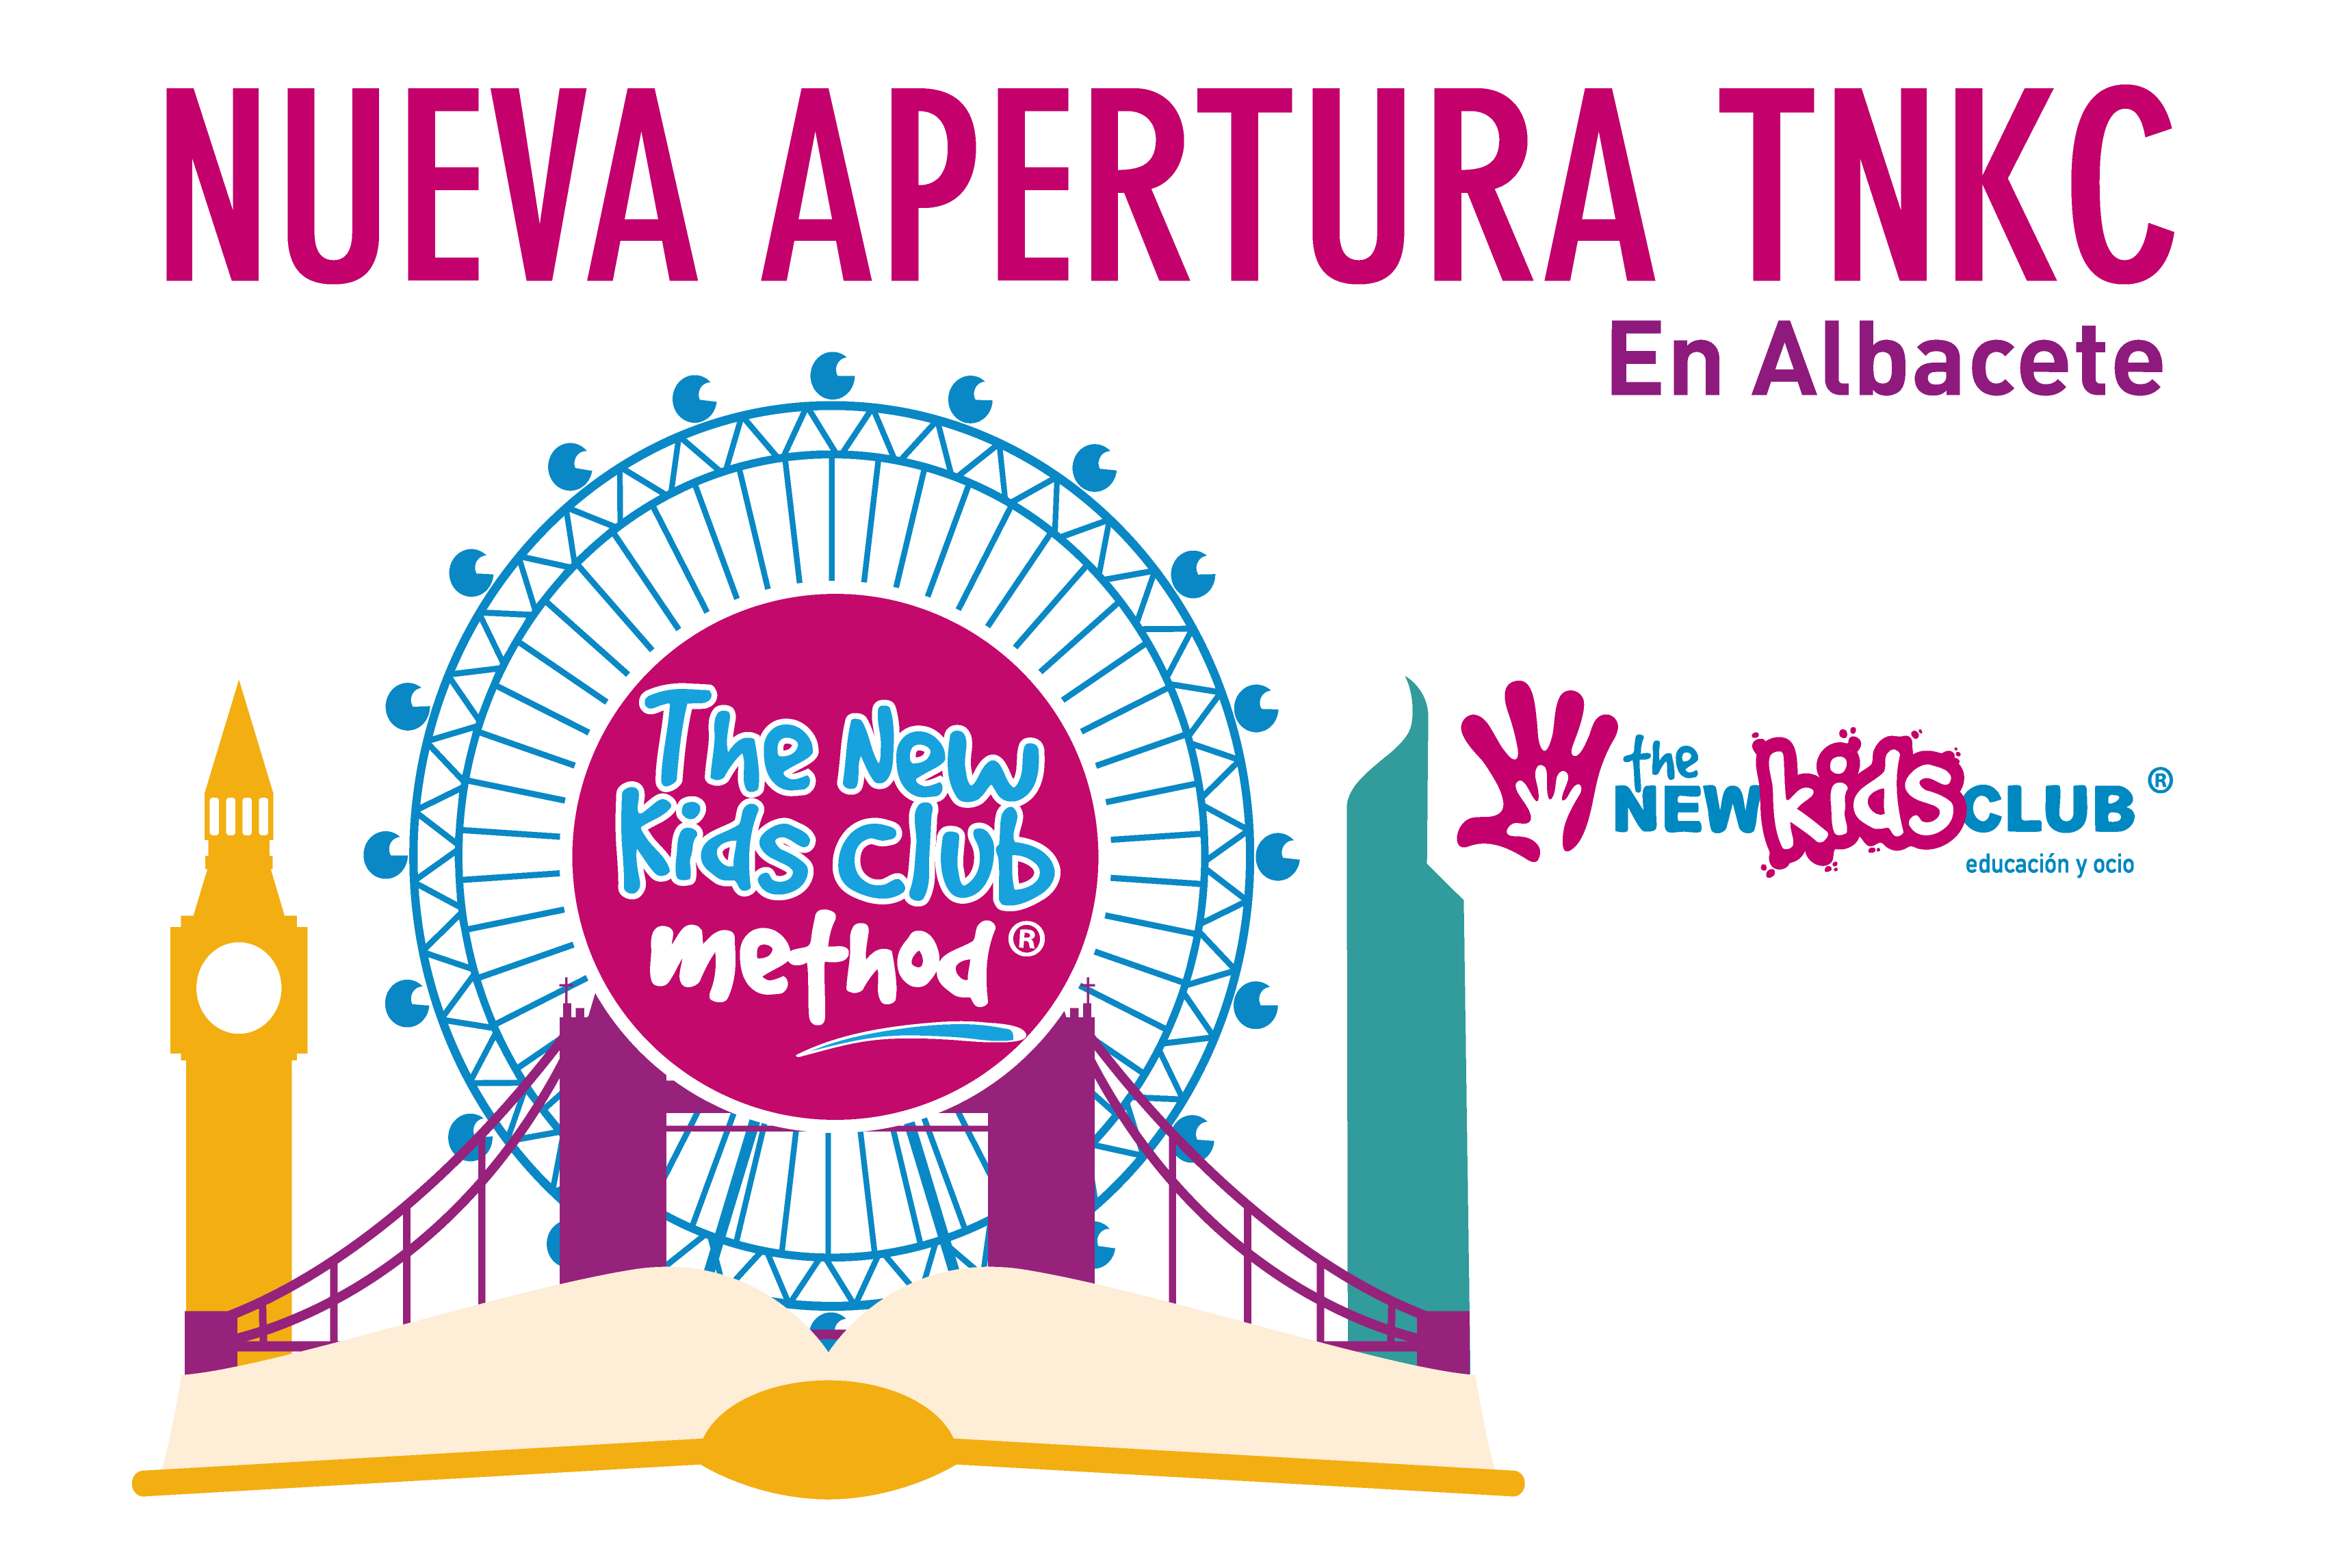 The New Kids Club abrirá un nuevo centro en Albacete